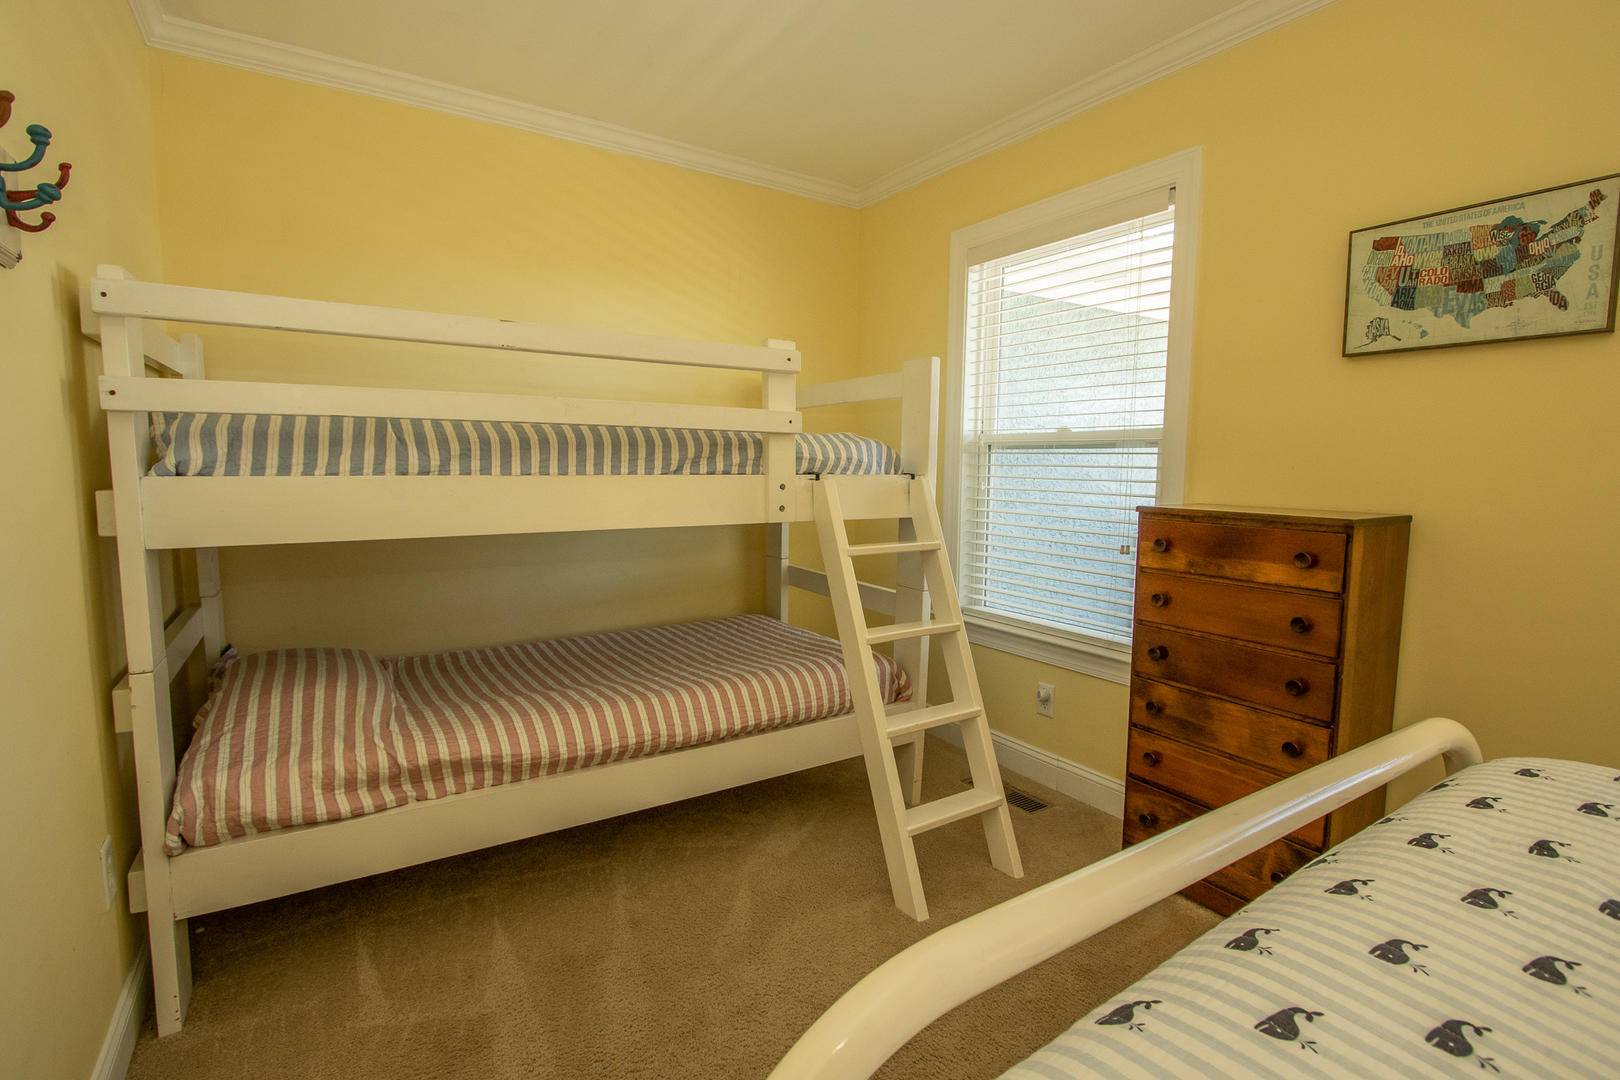 Bedroom 4, bunks and full bed